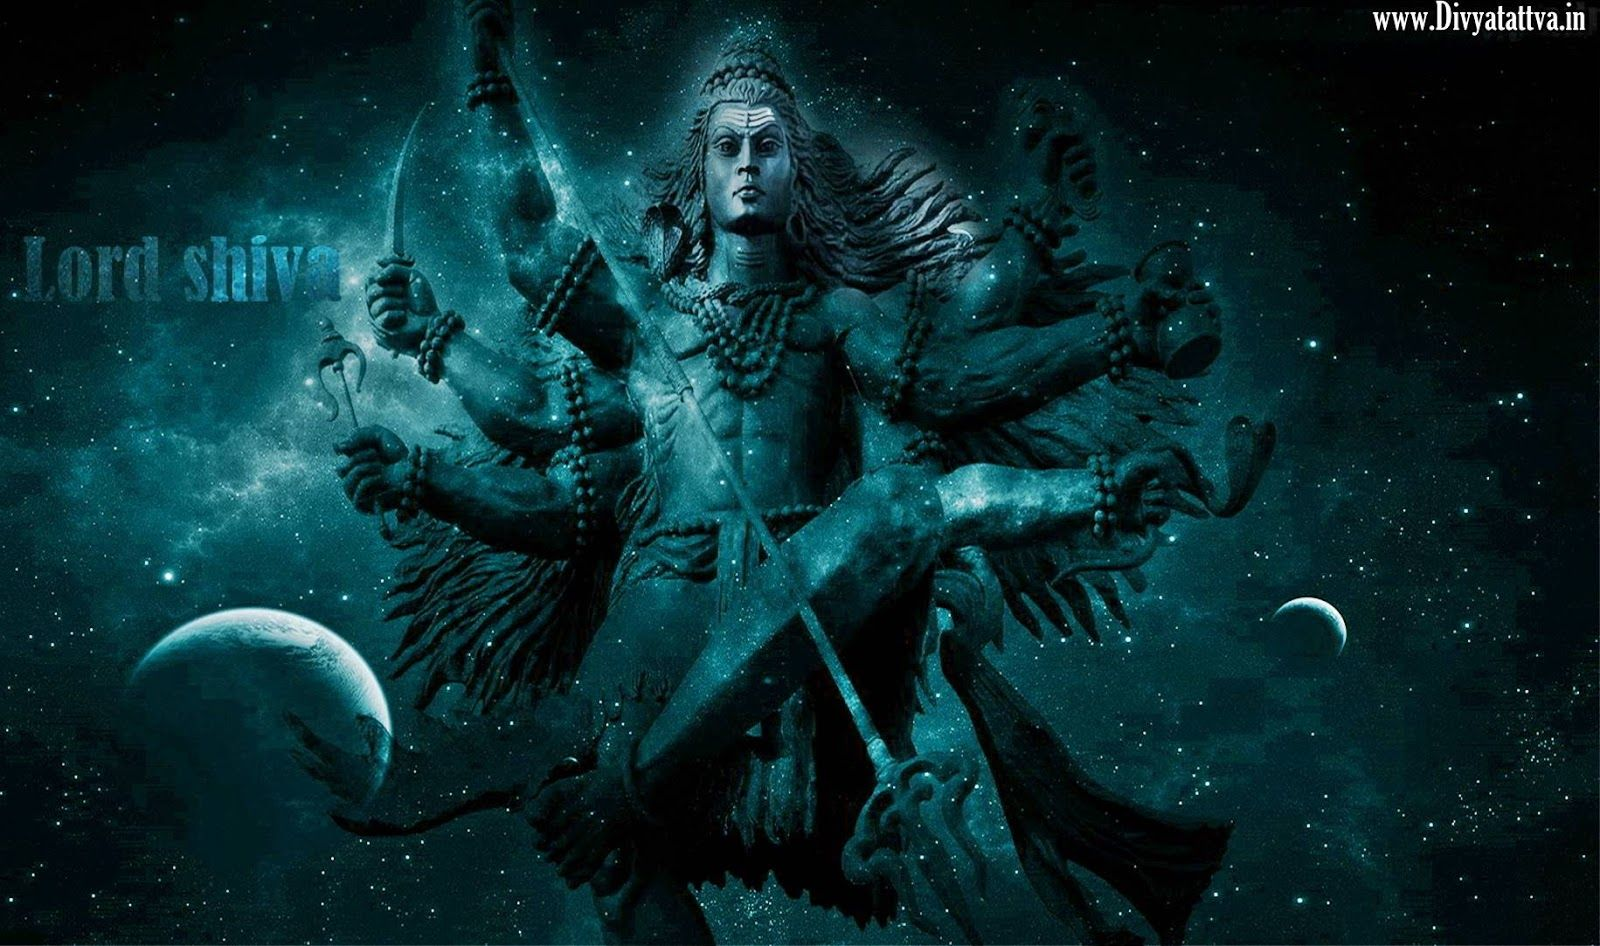 Image Result For Desktop Wallpaper Lord Shiva Shiva Angry Lord